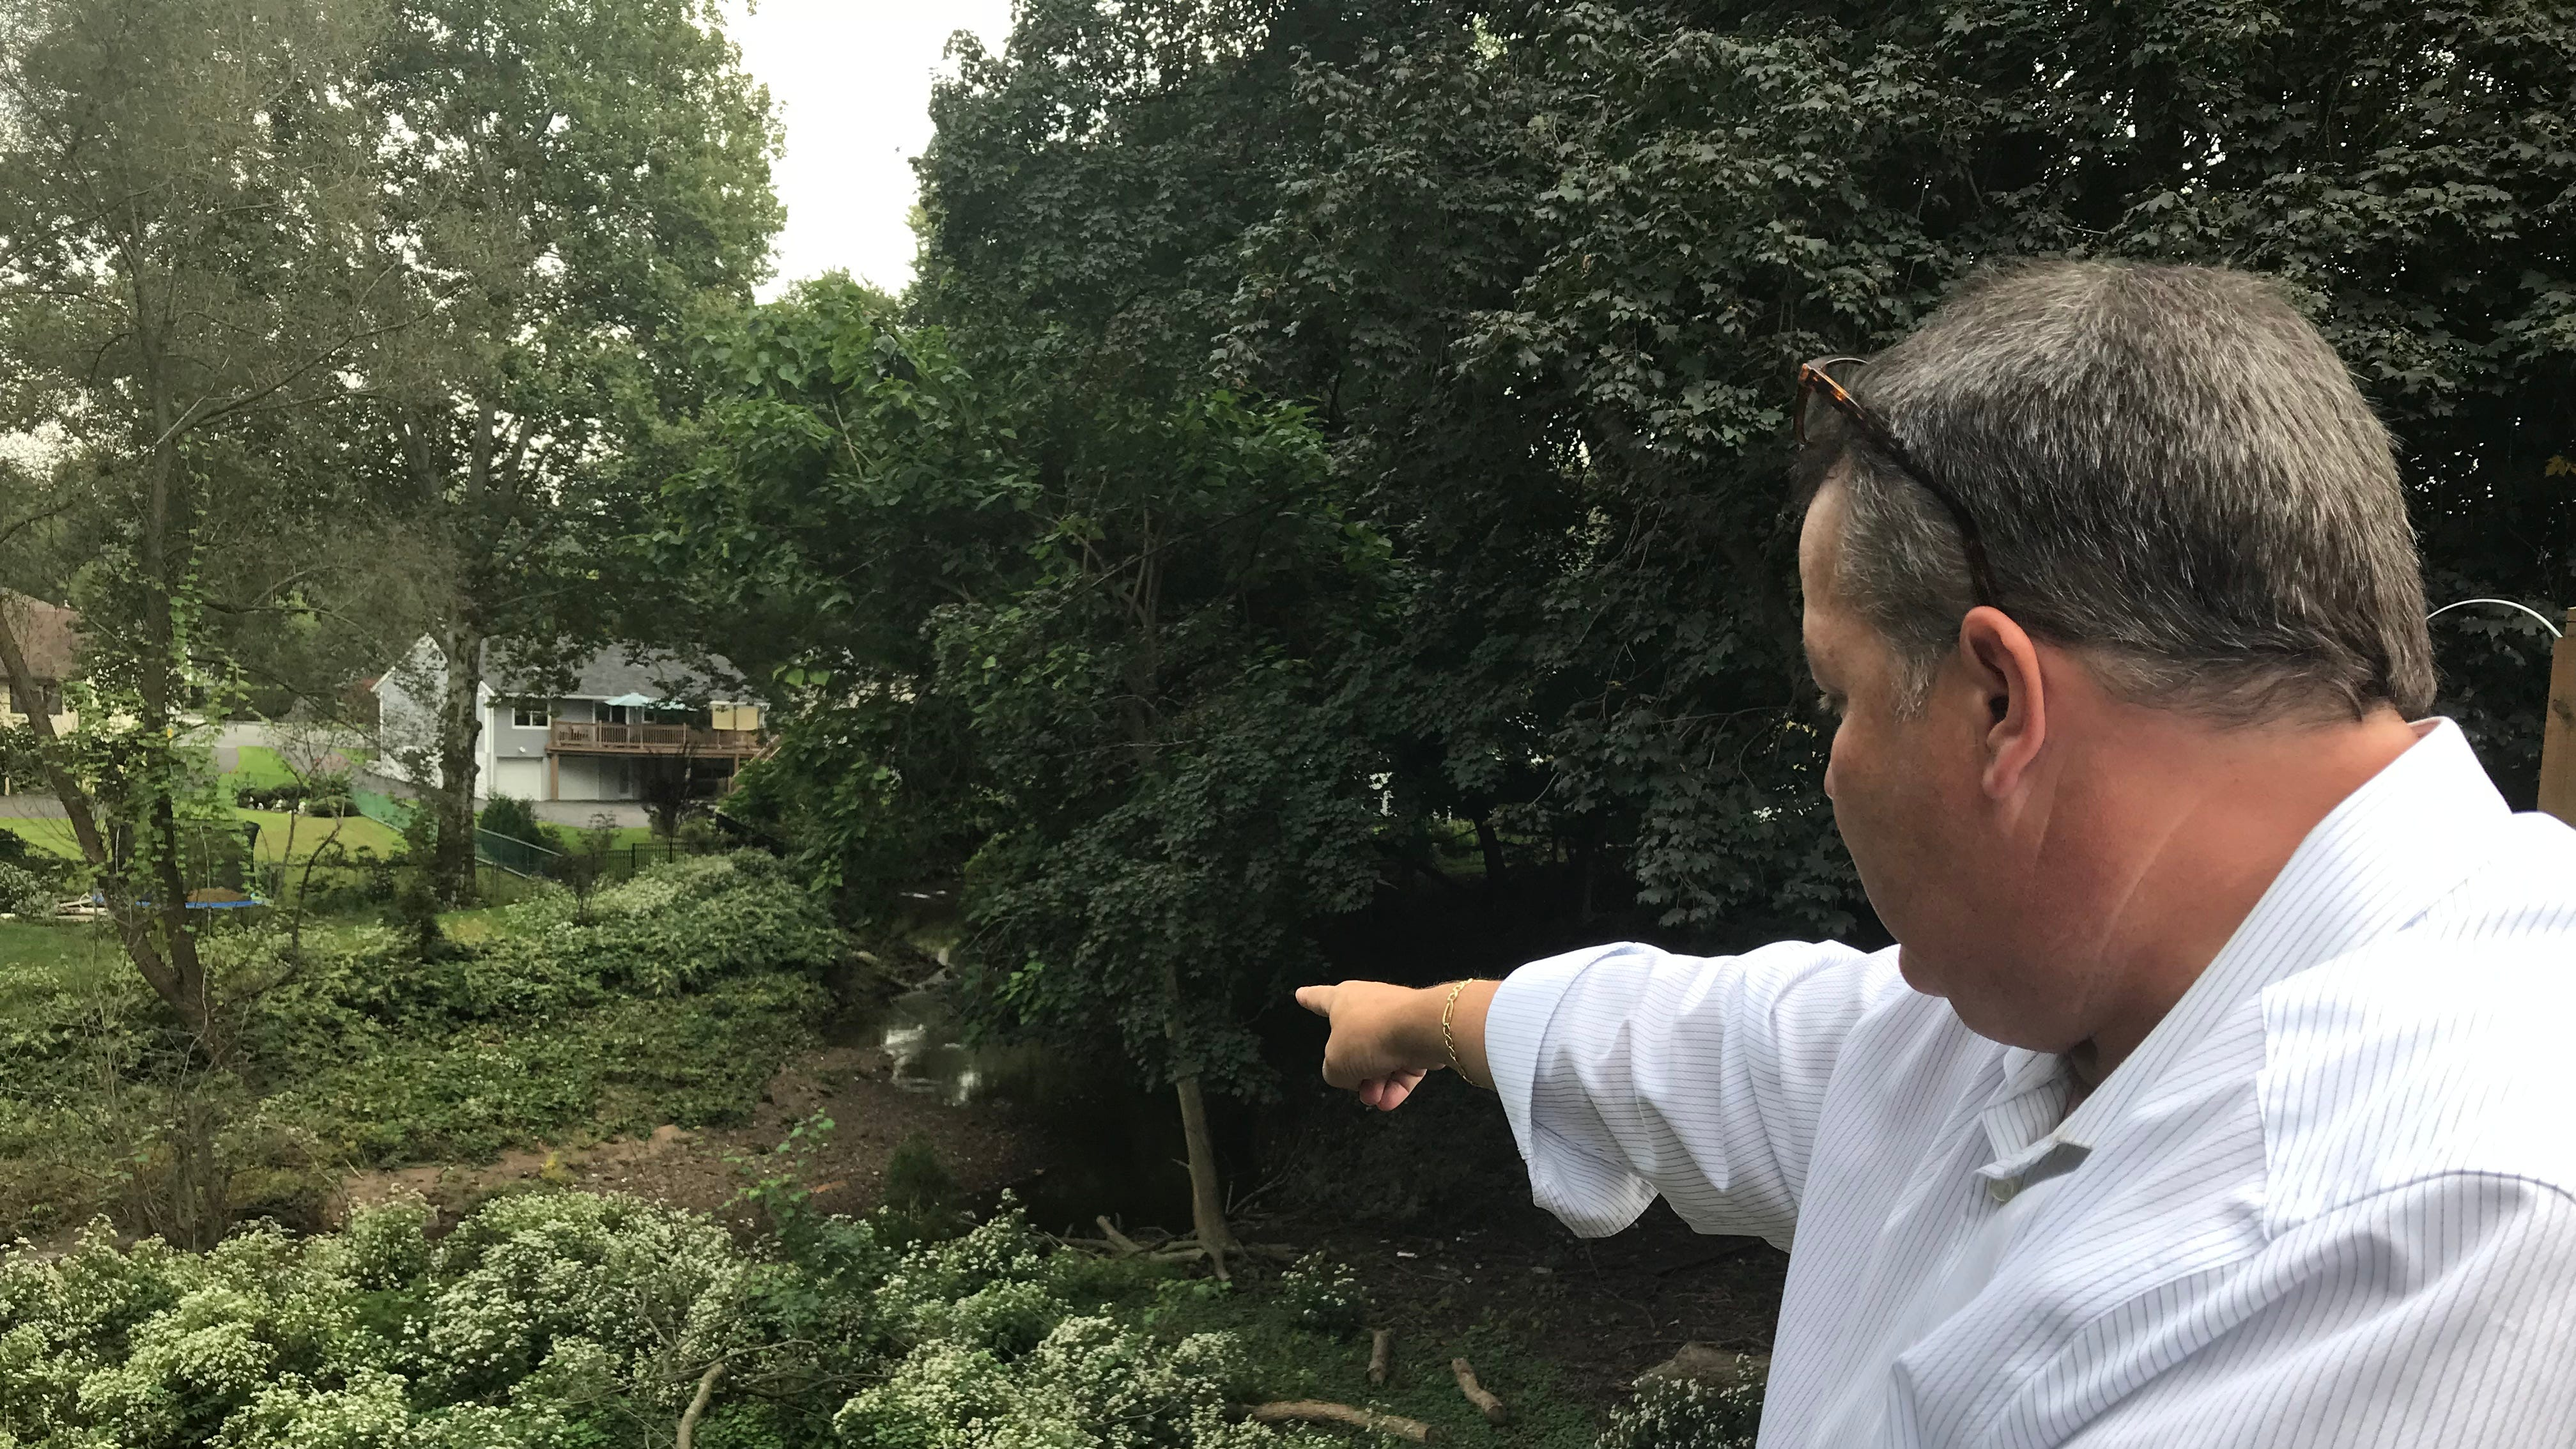 New Milford resident sees yard eroding, blames flood project